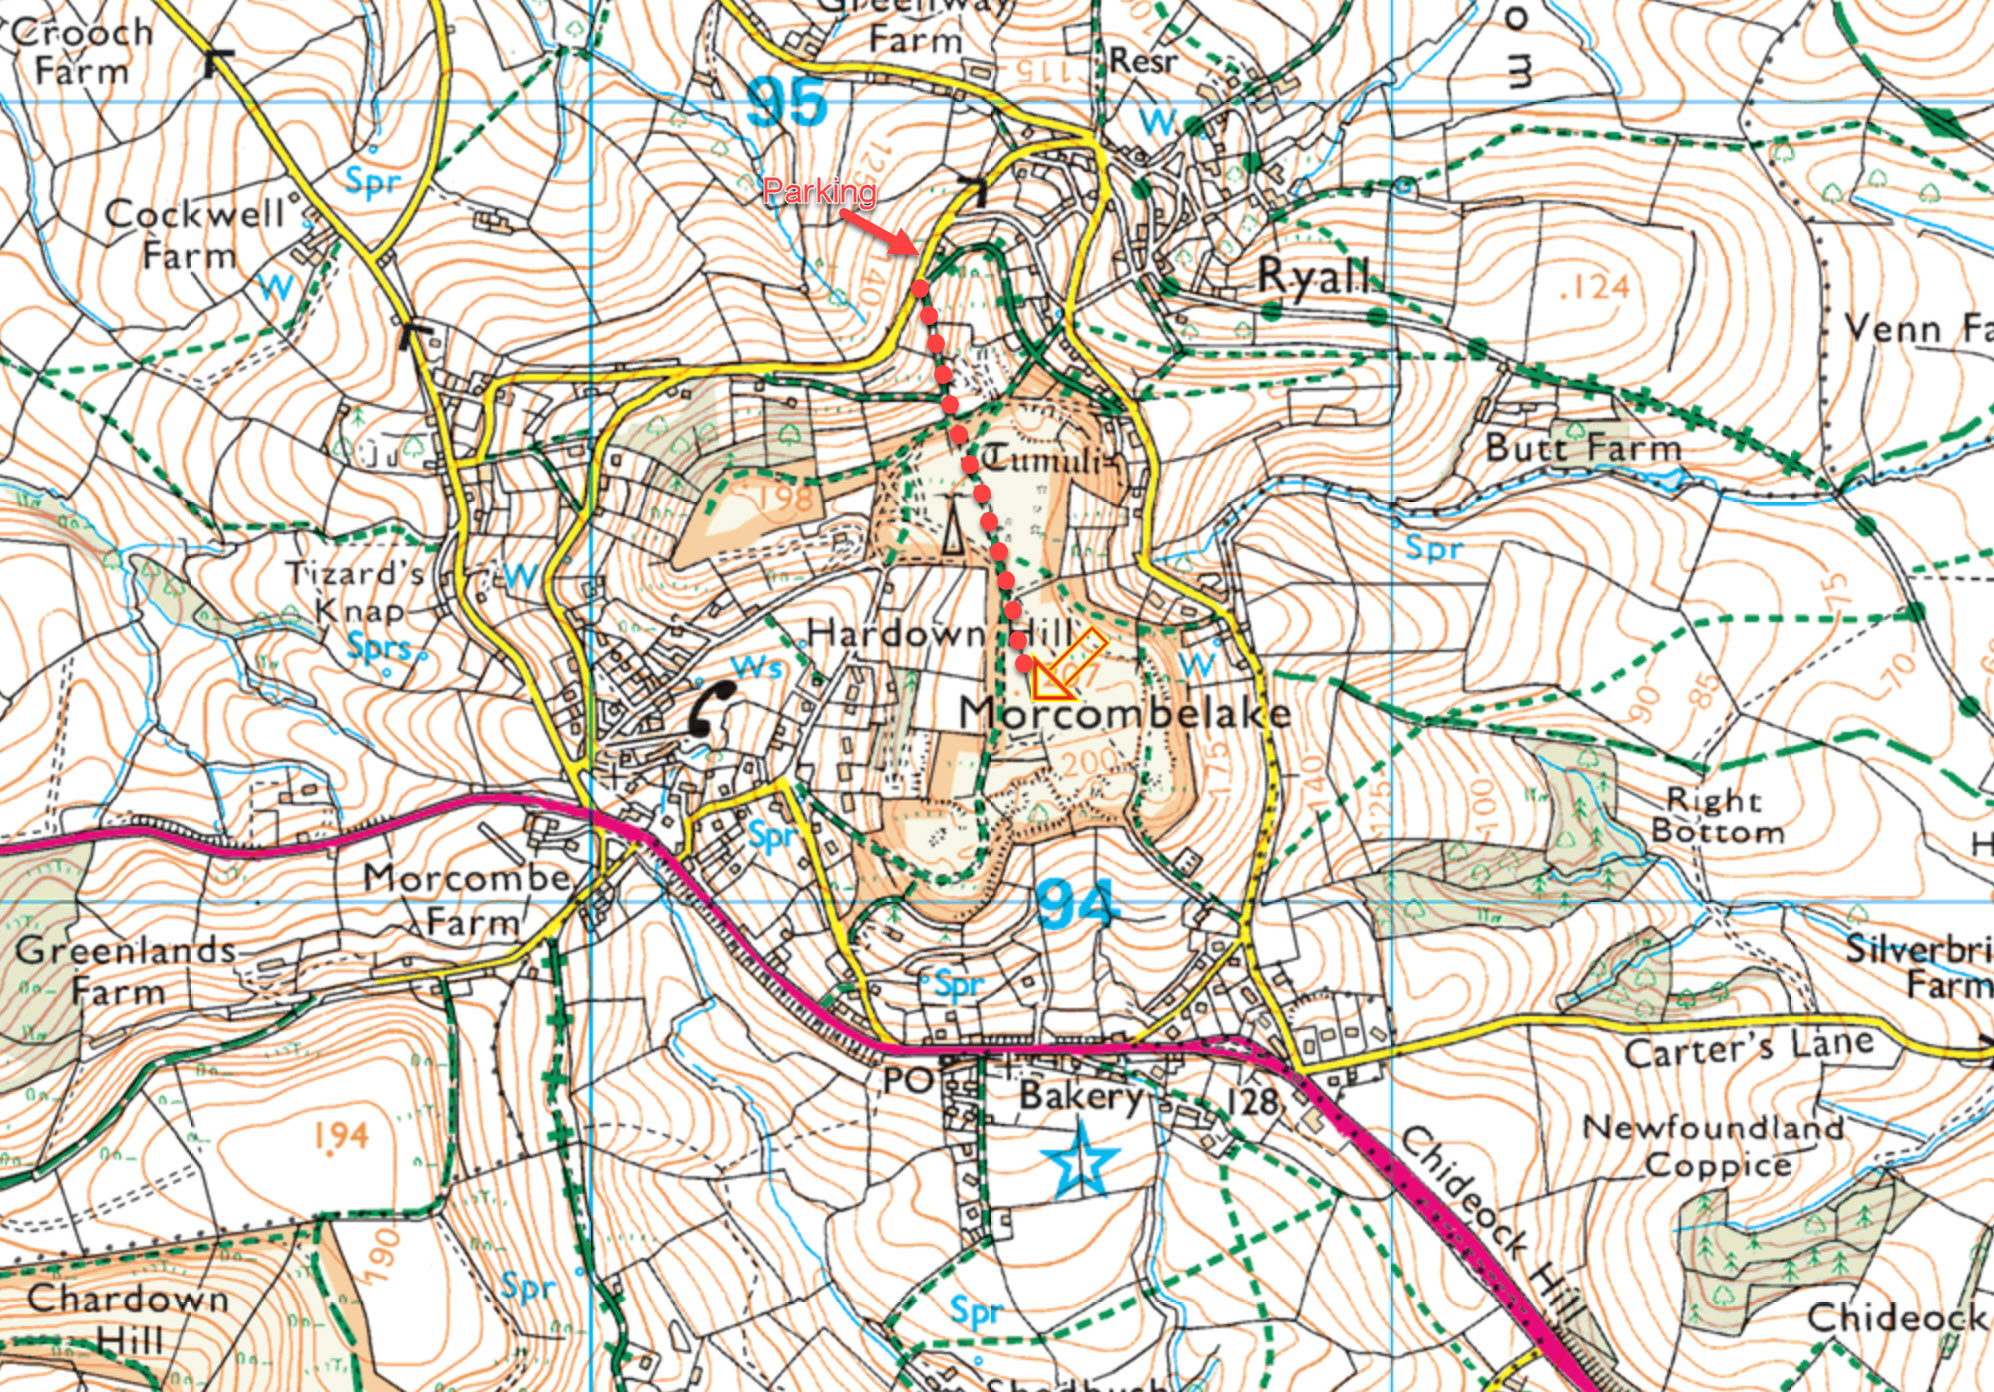 Hardown Hill map